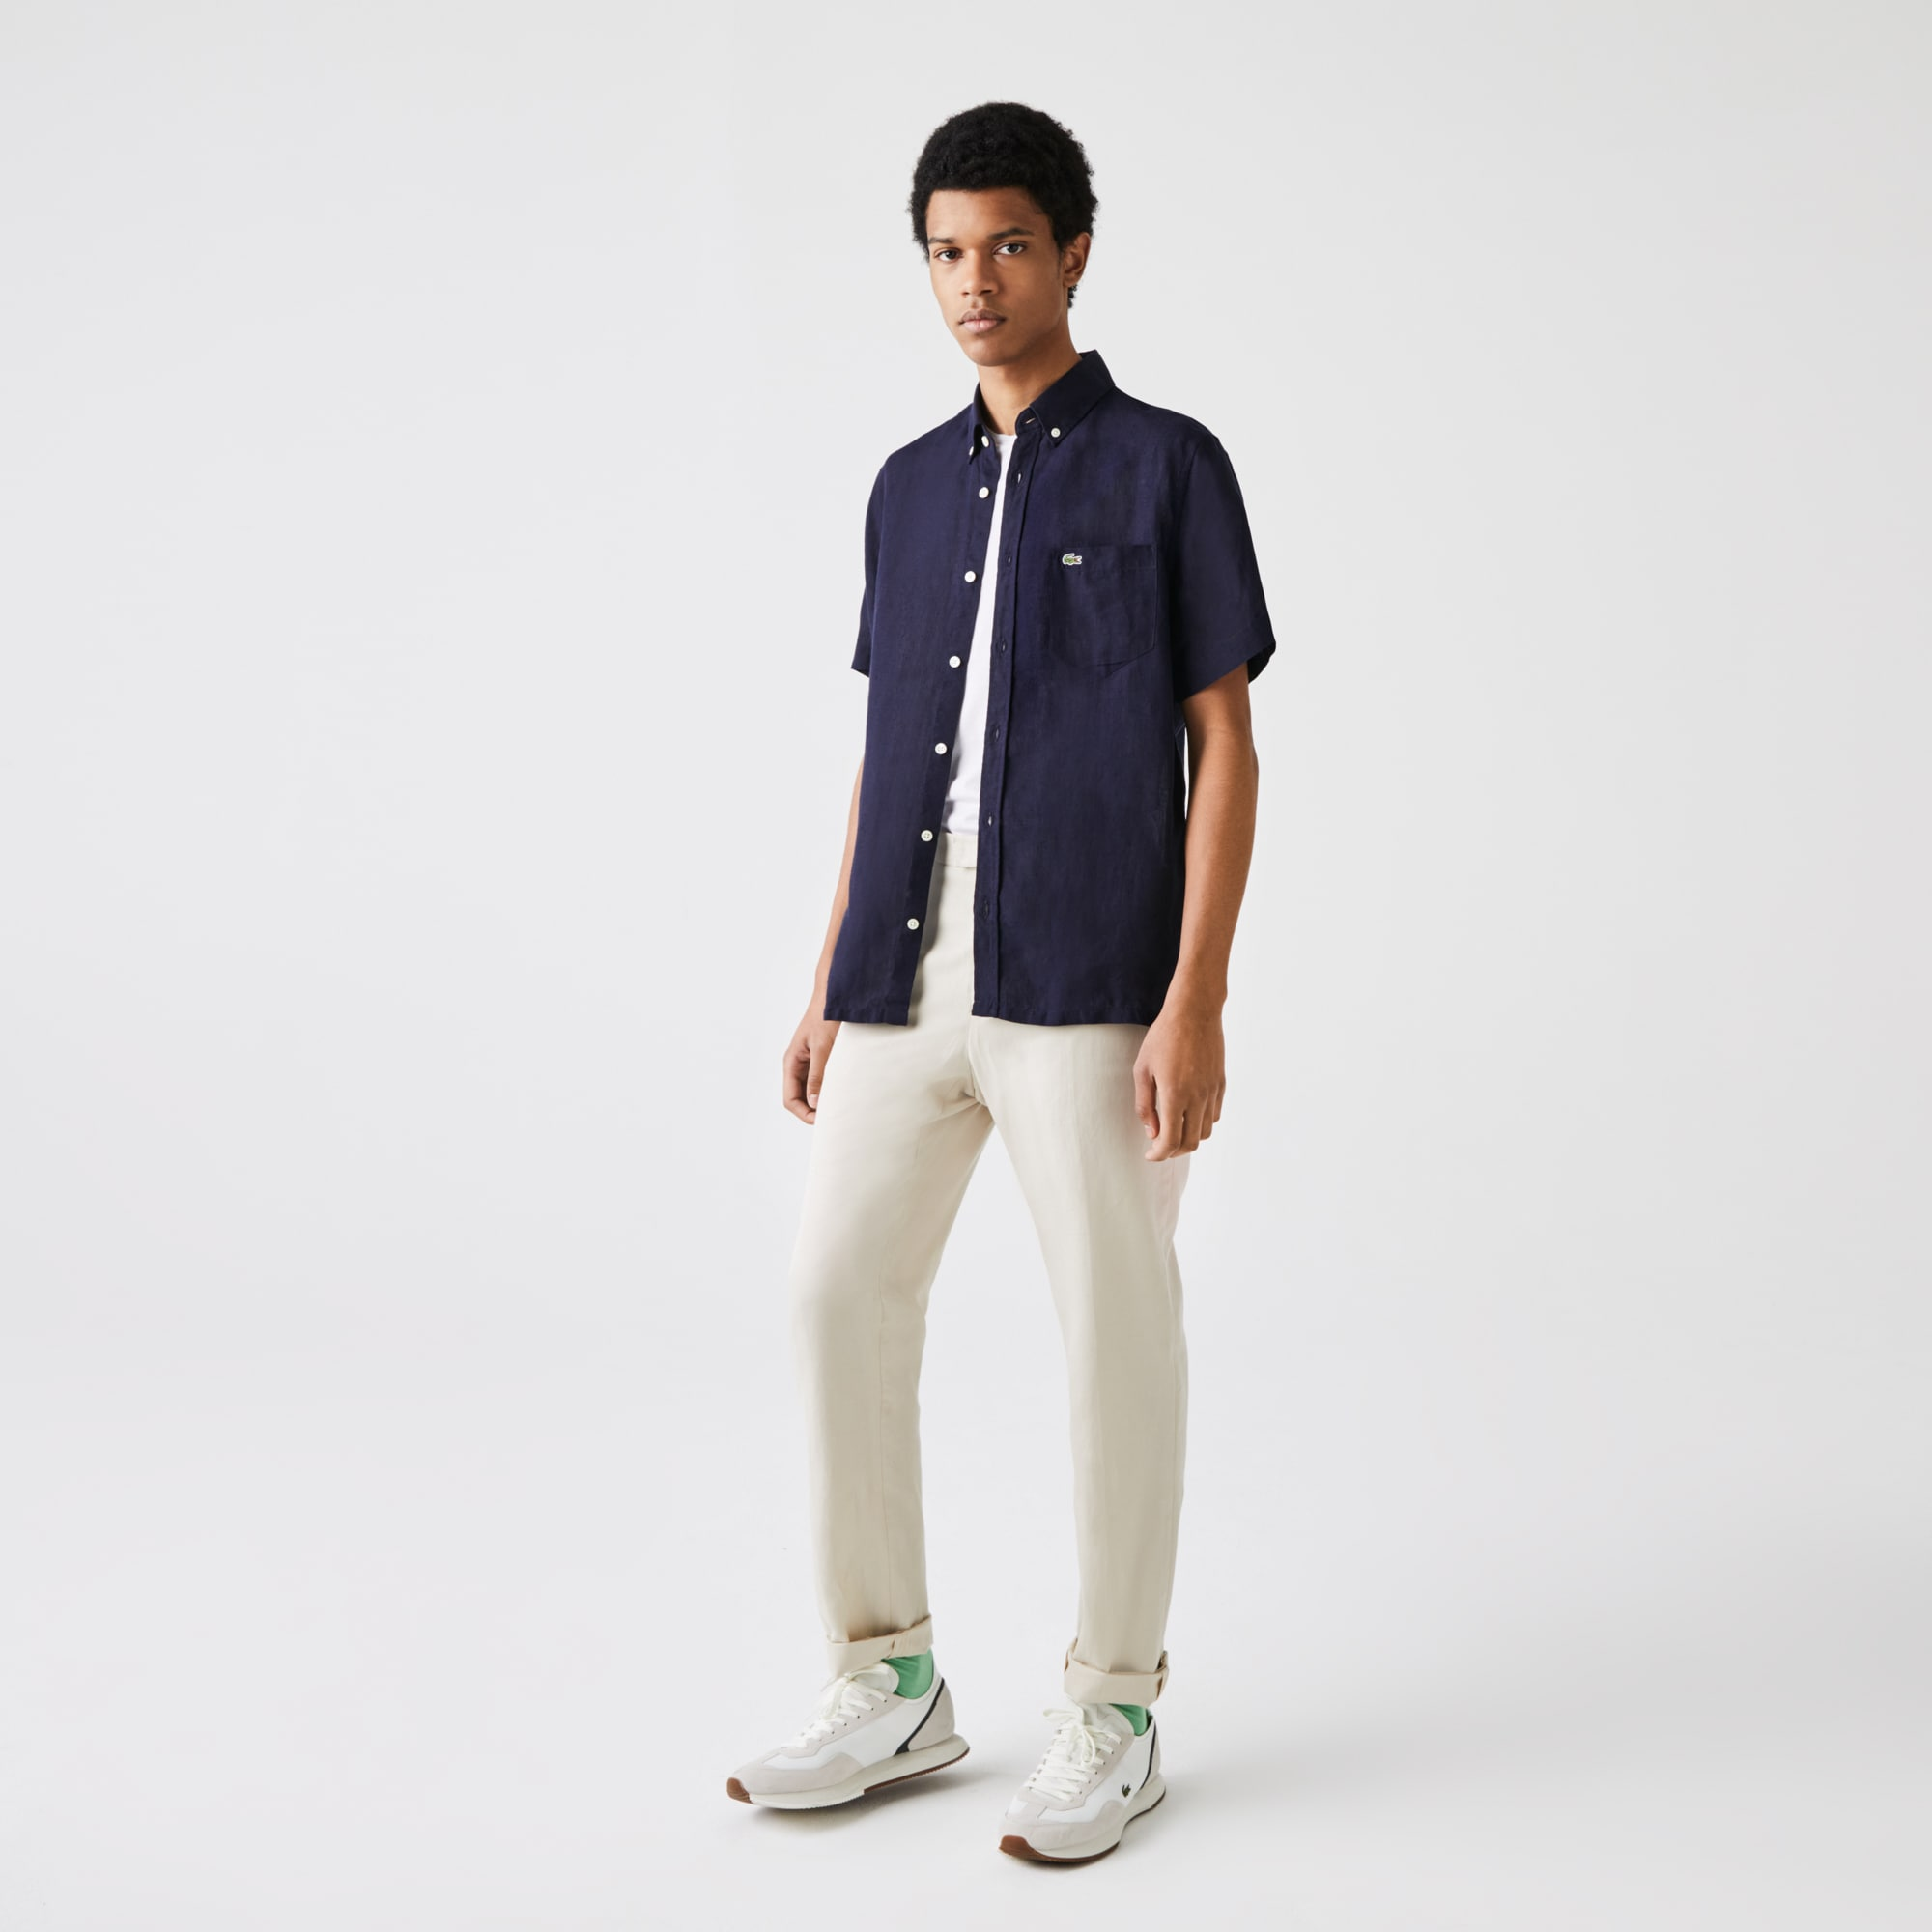 Lacoste - Camisa Lino - 1